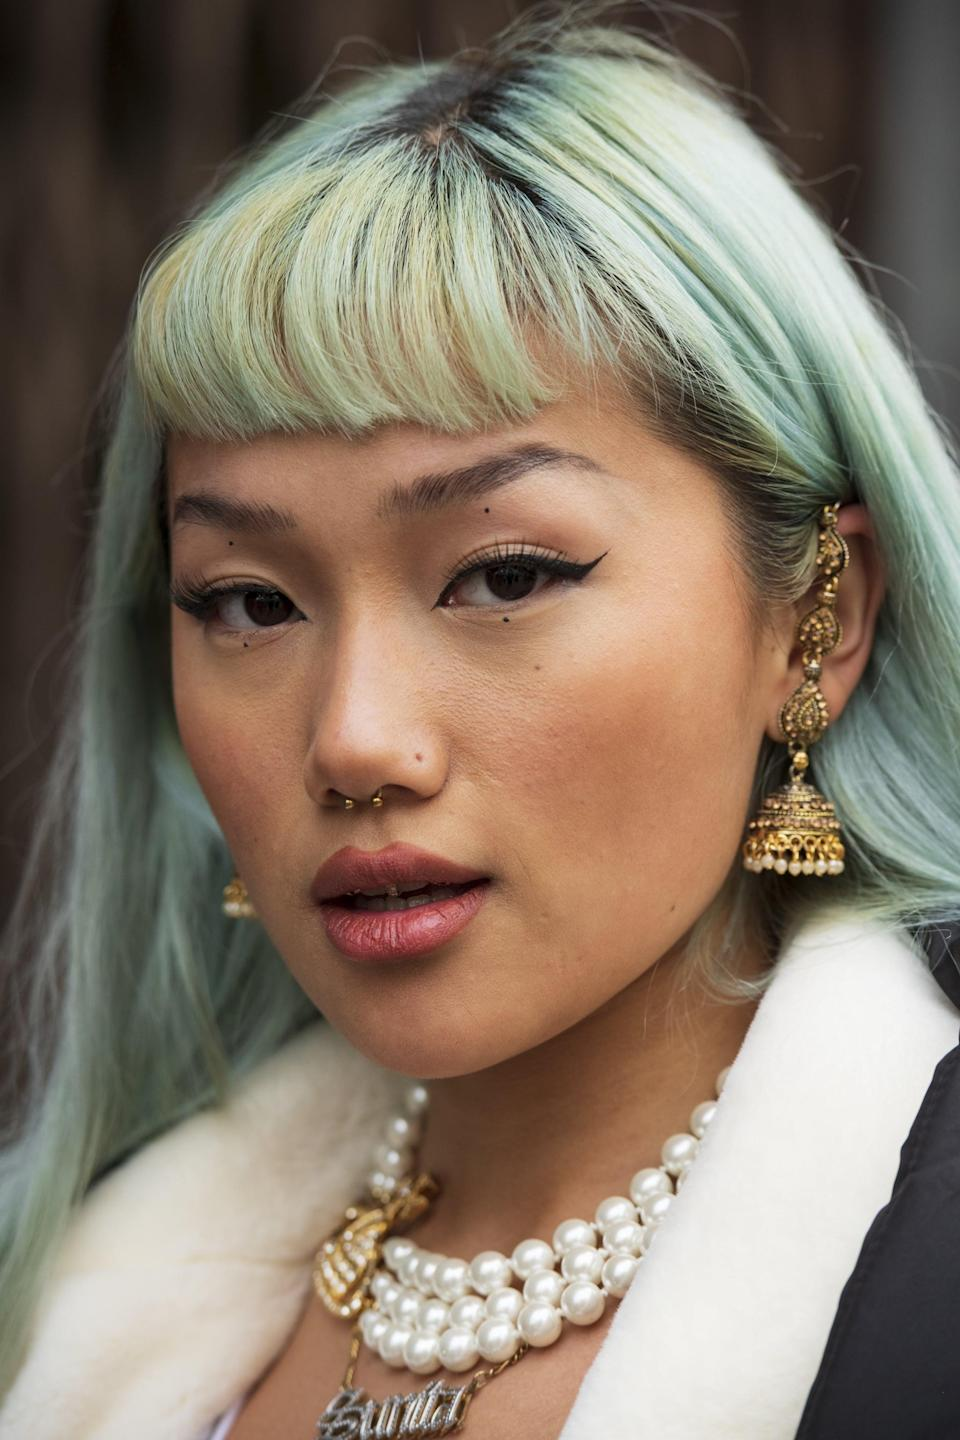 <p>As an Aries, you're not afraid to make a big hair change. You know what you want and you're not afraid to make it happen. That's why a bold choice like blunt, straight-across bangs is great. </p>